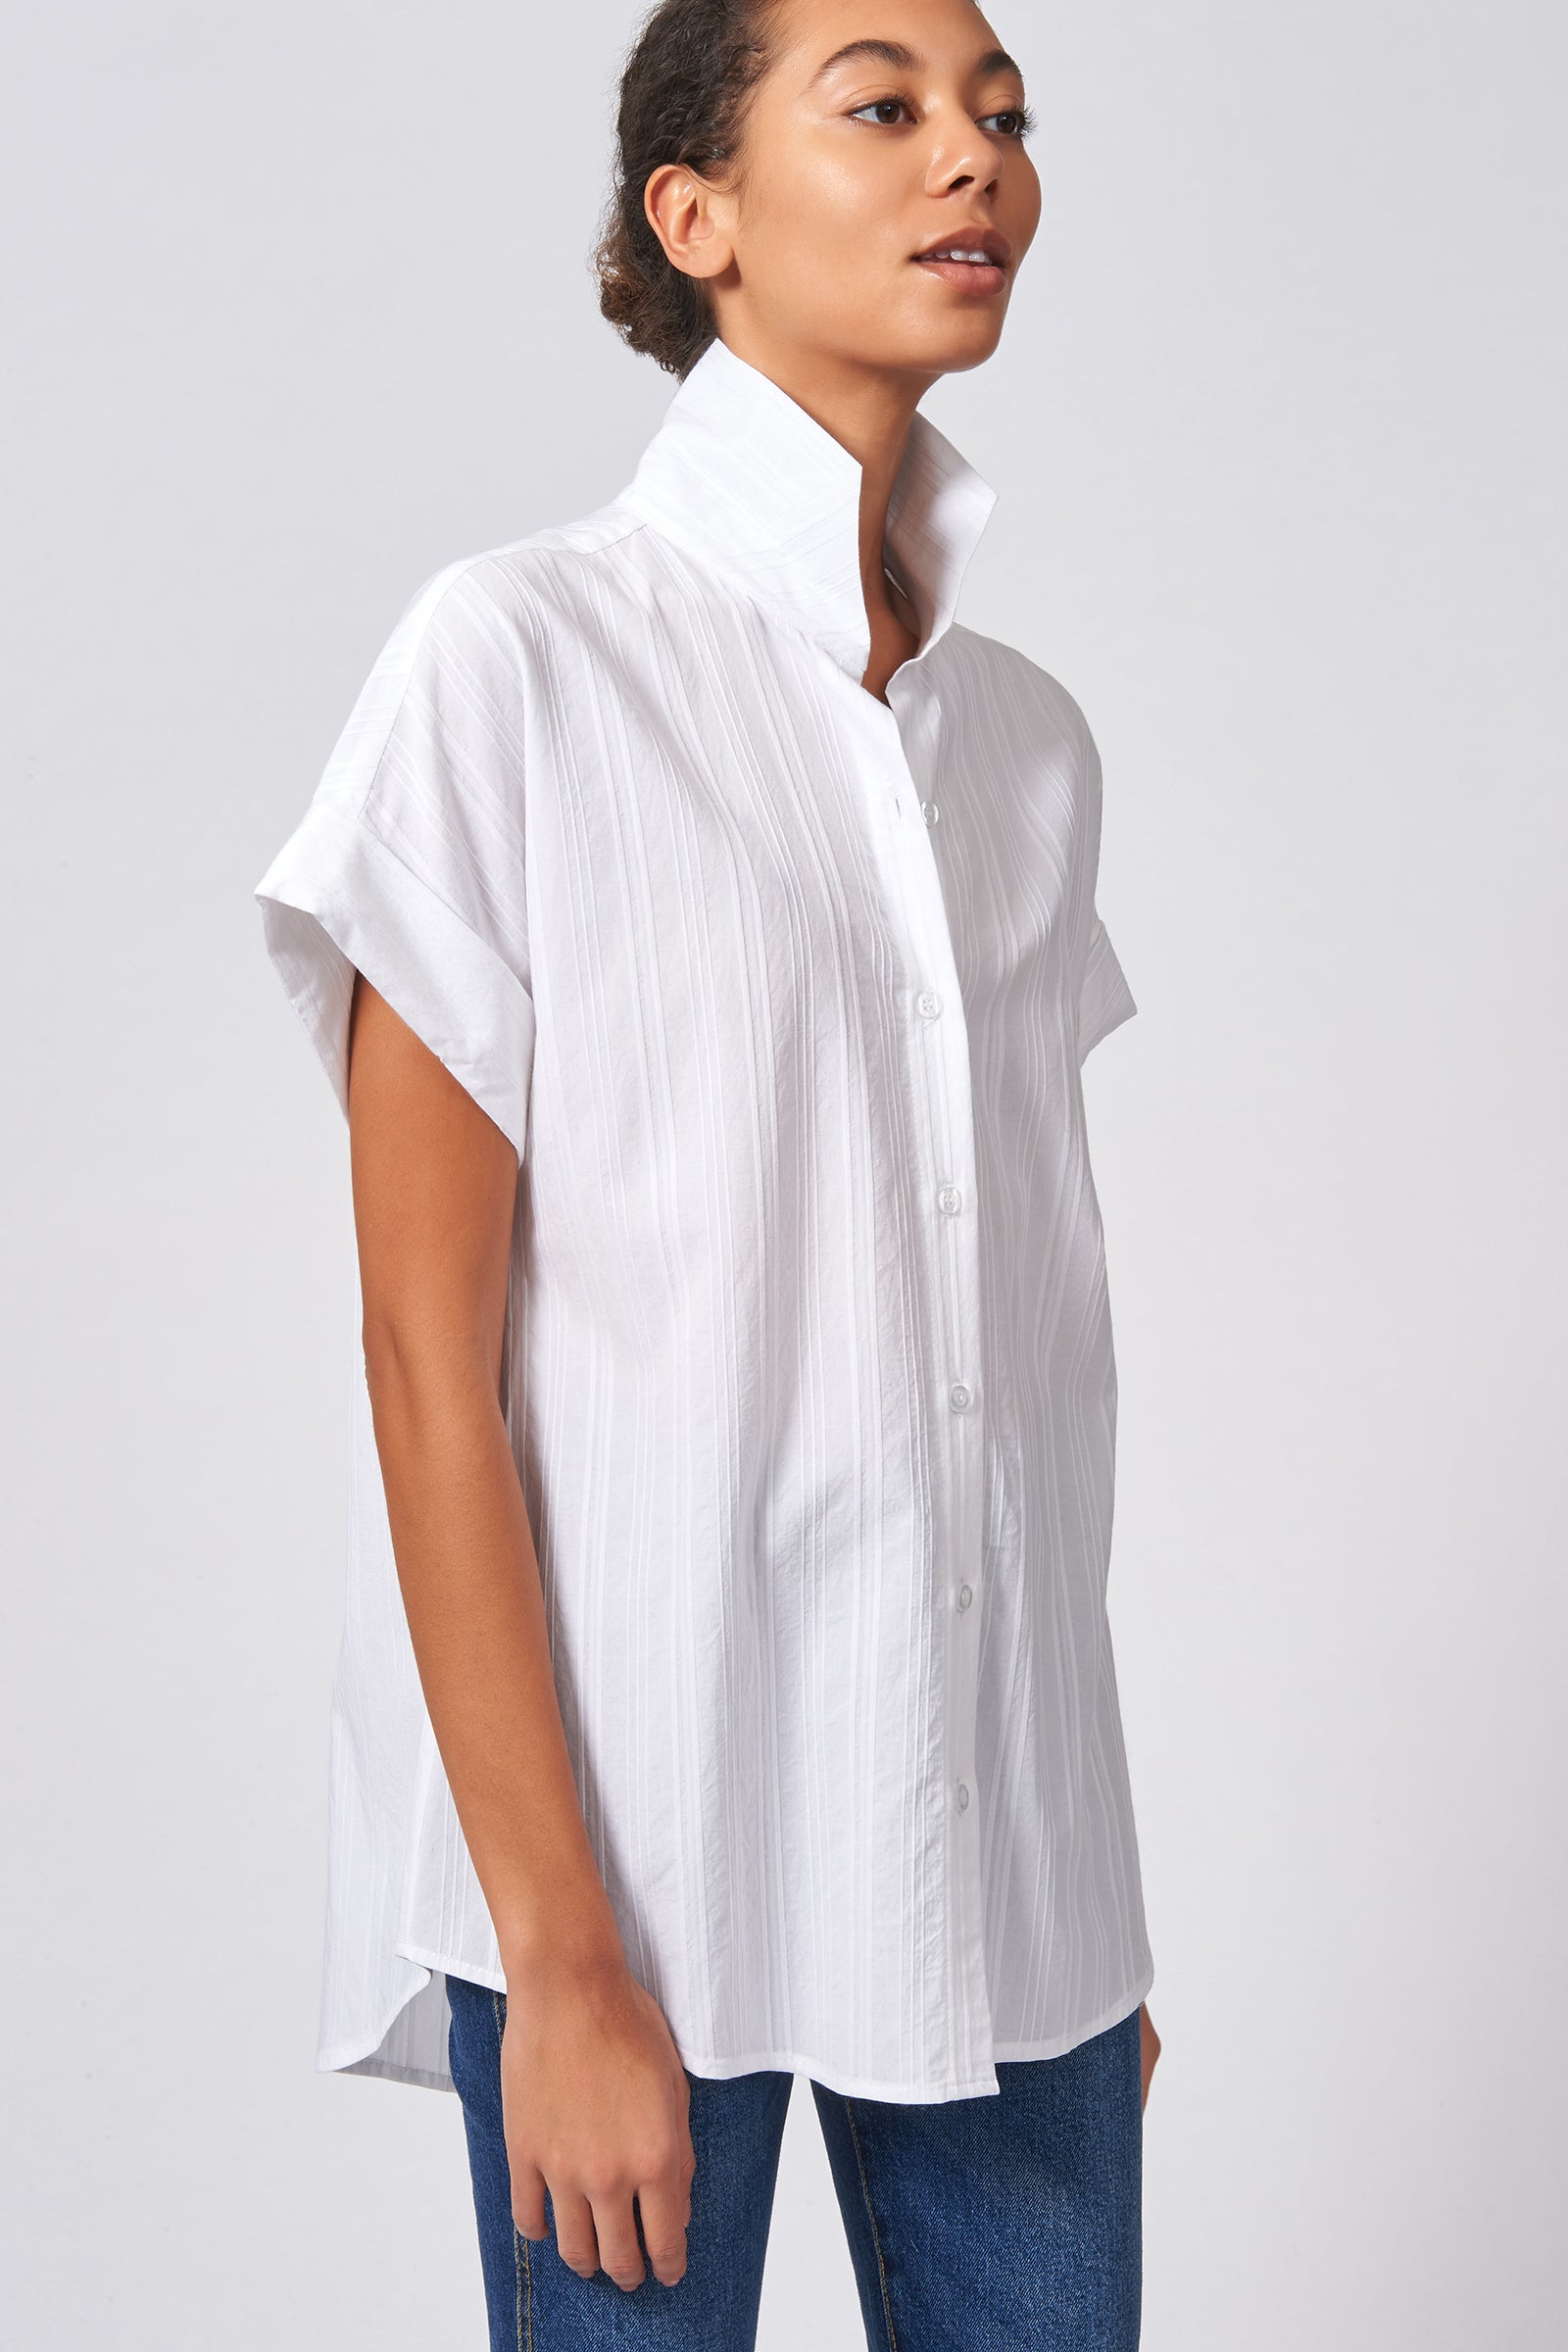 Kal Rieman Kimono Shirt in White Stripe on Model Front Side View